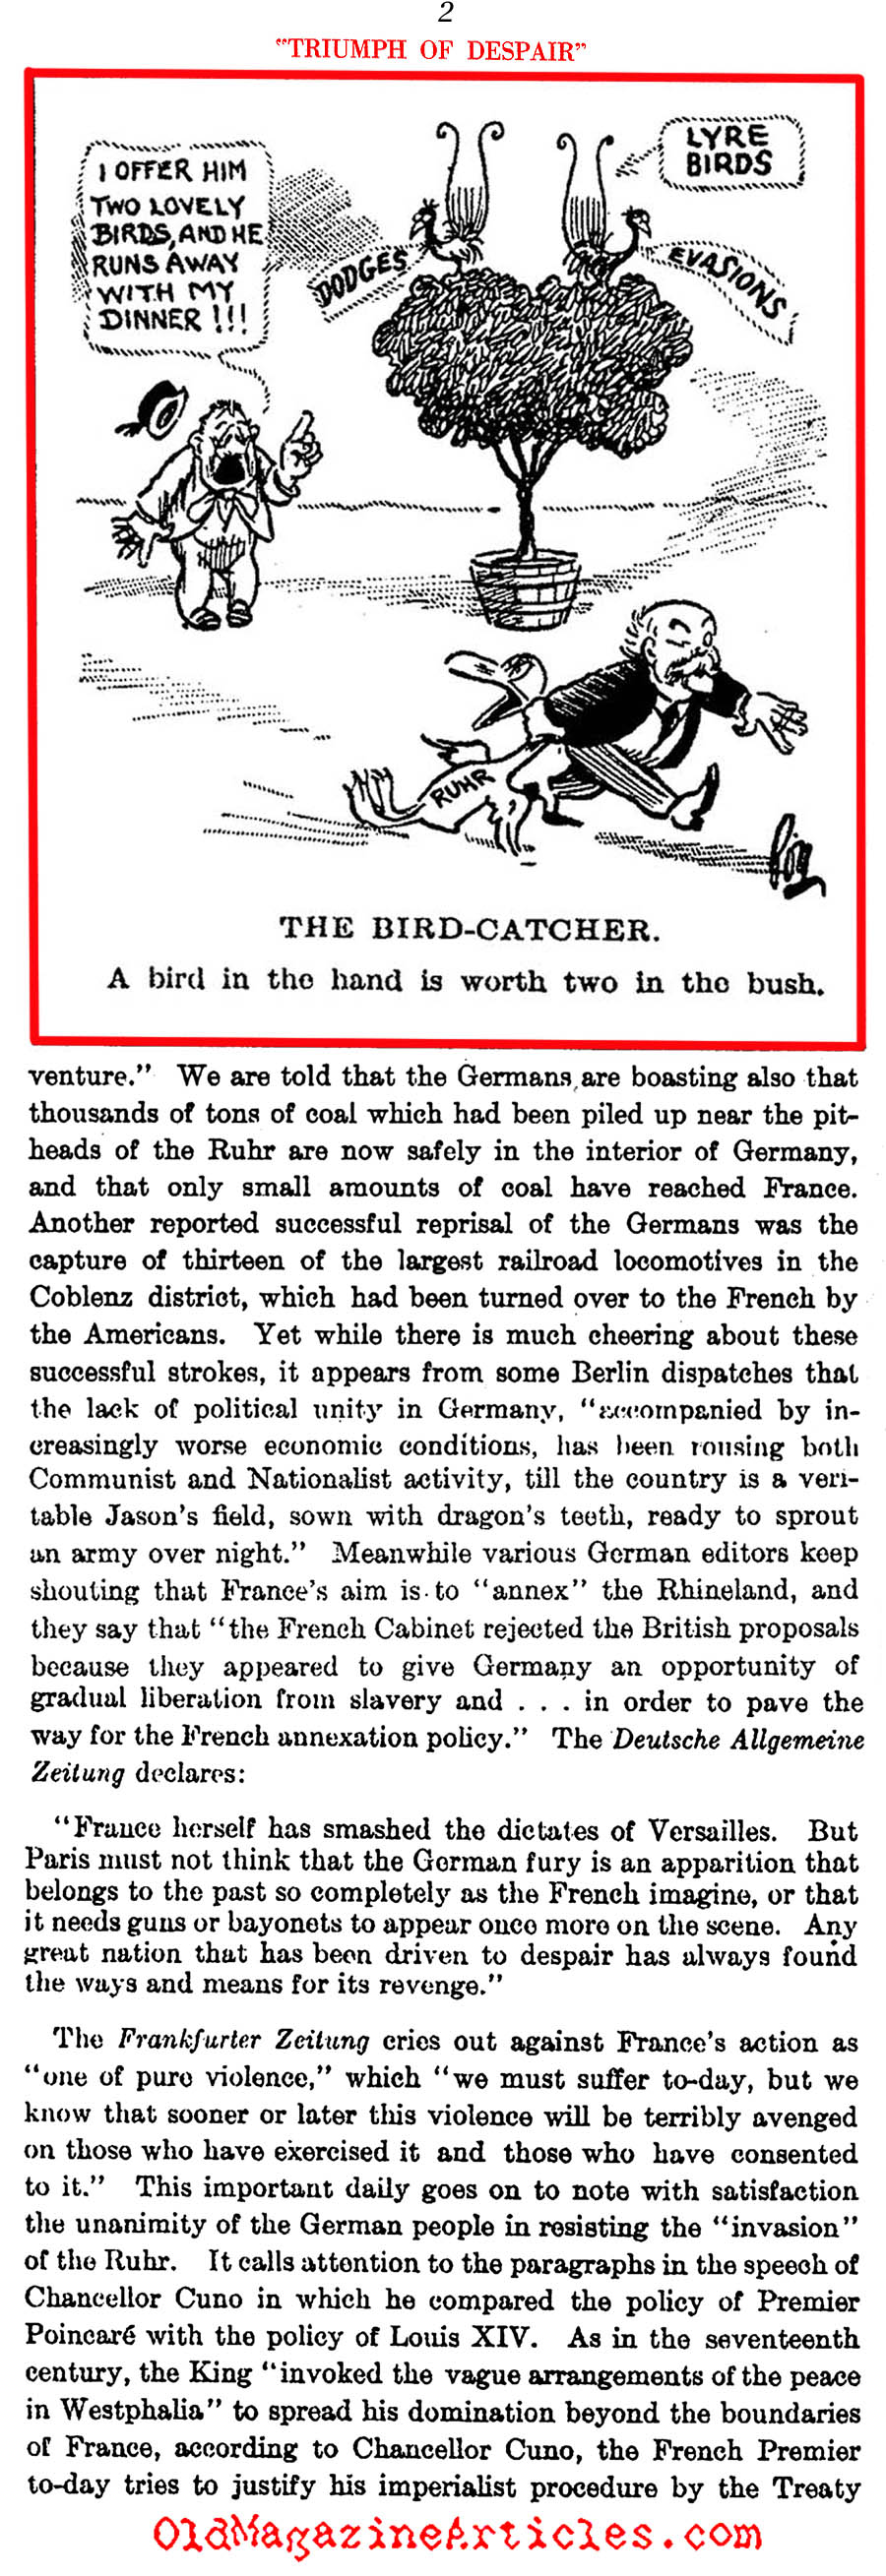 The French Army Moves into the Ruhr Valley (Literary Digest, 1923)